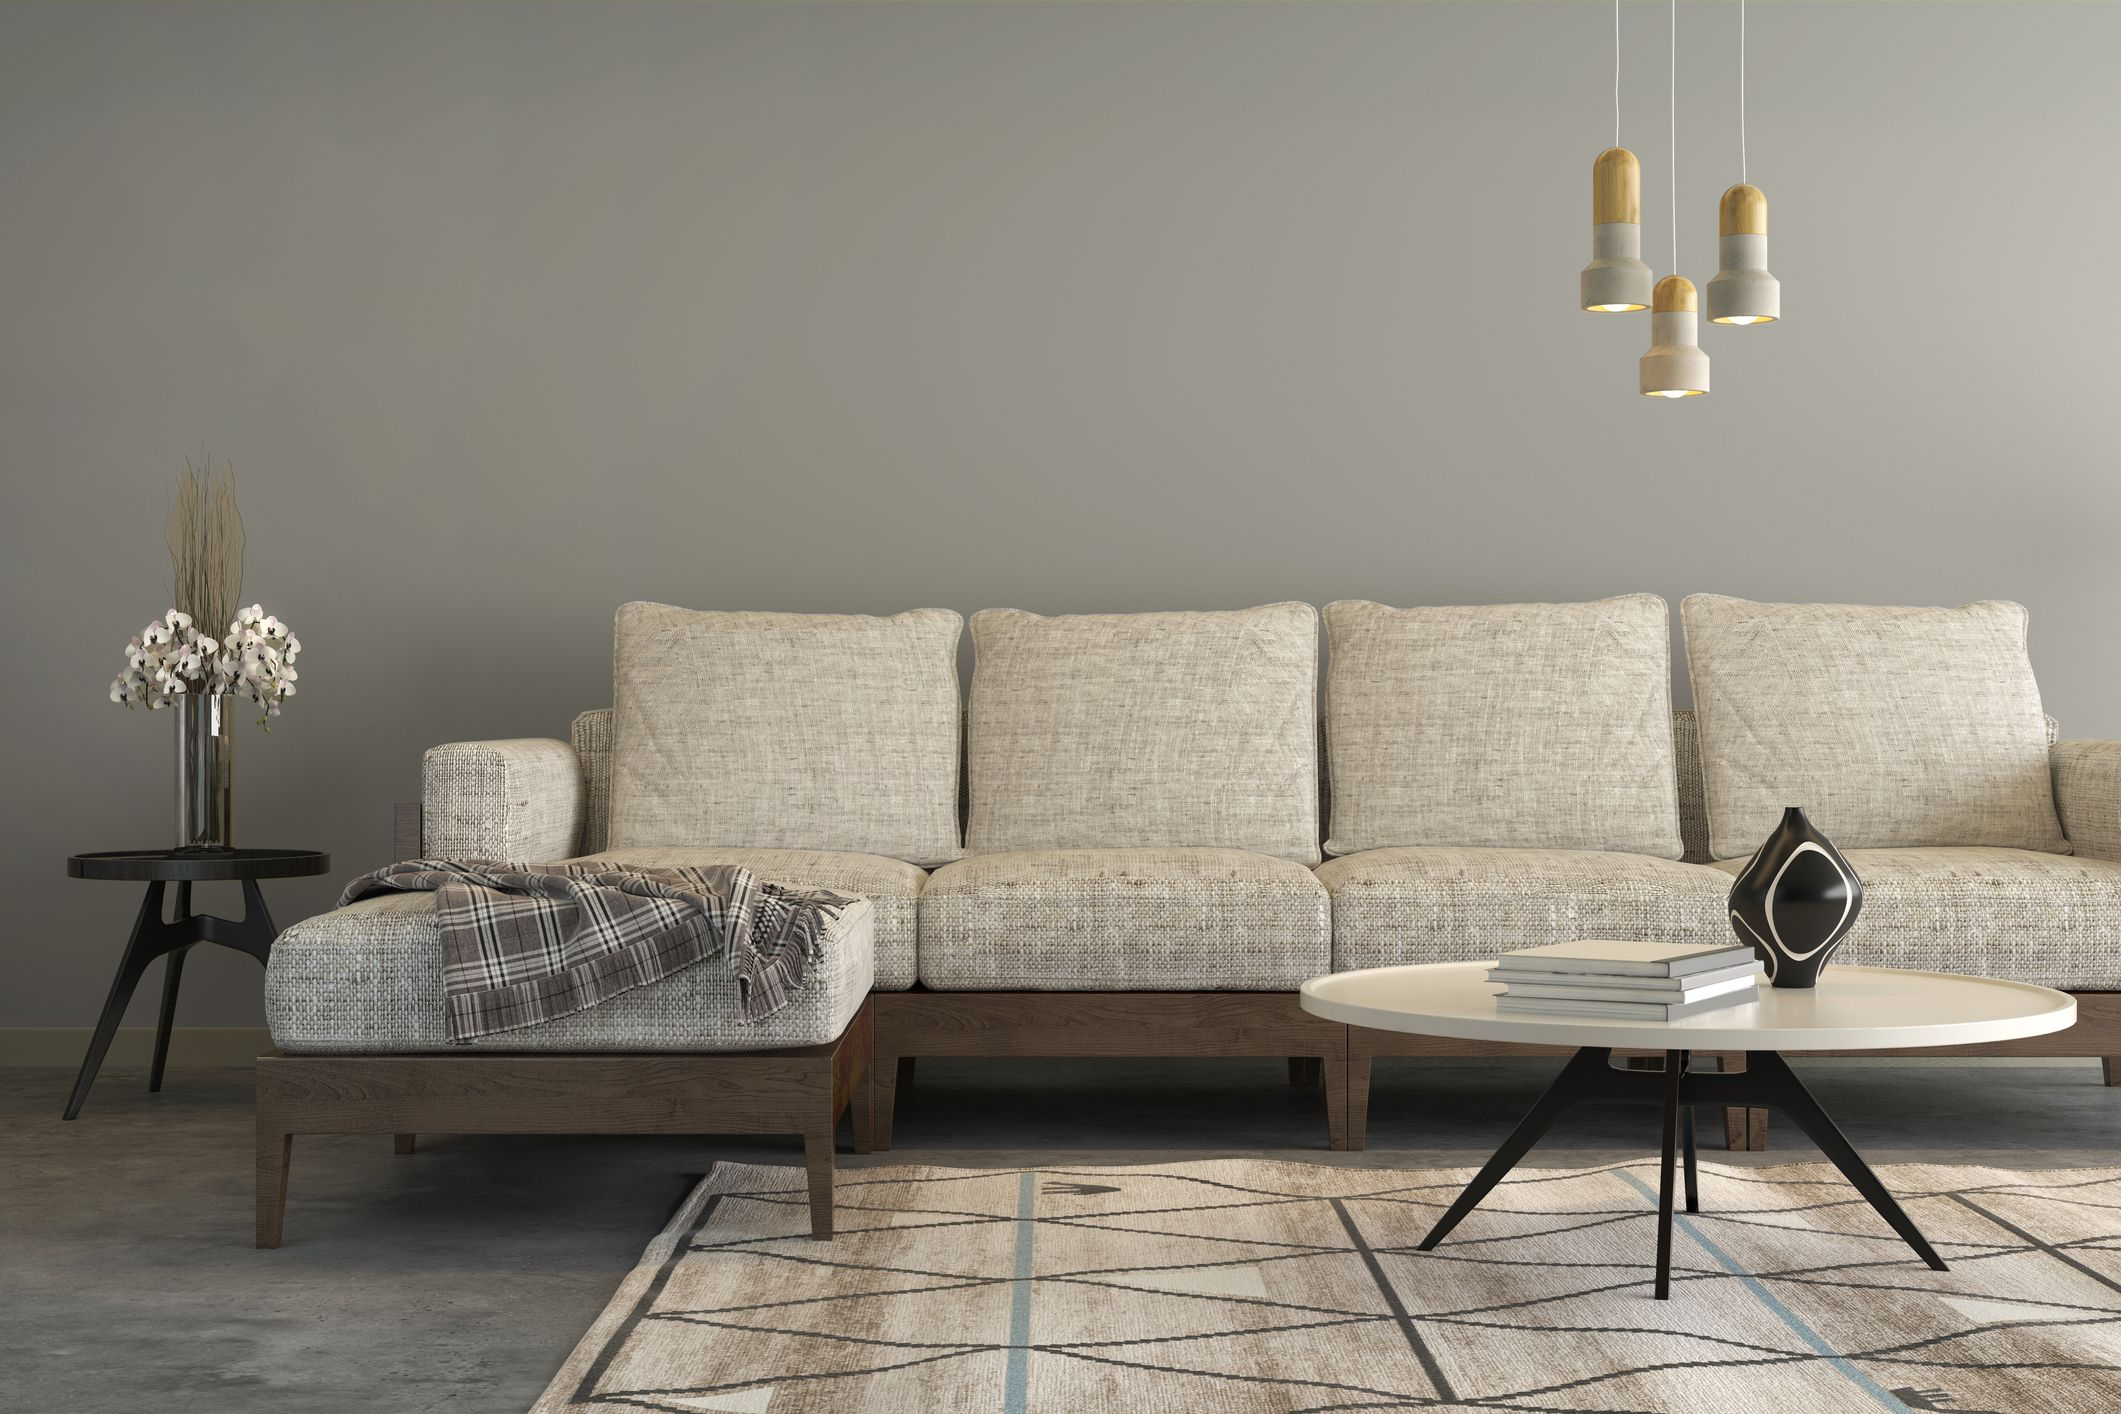 choosing the right area rug for your living room living room ideas - Designing Your Living Room Ideas